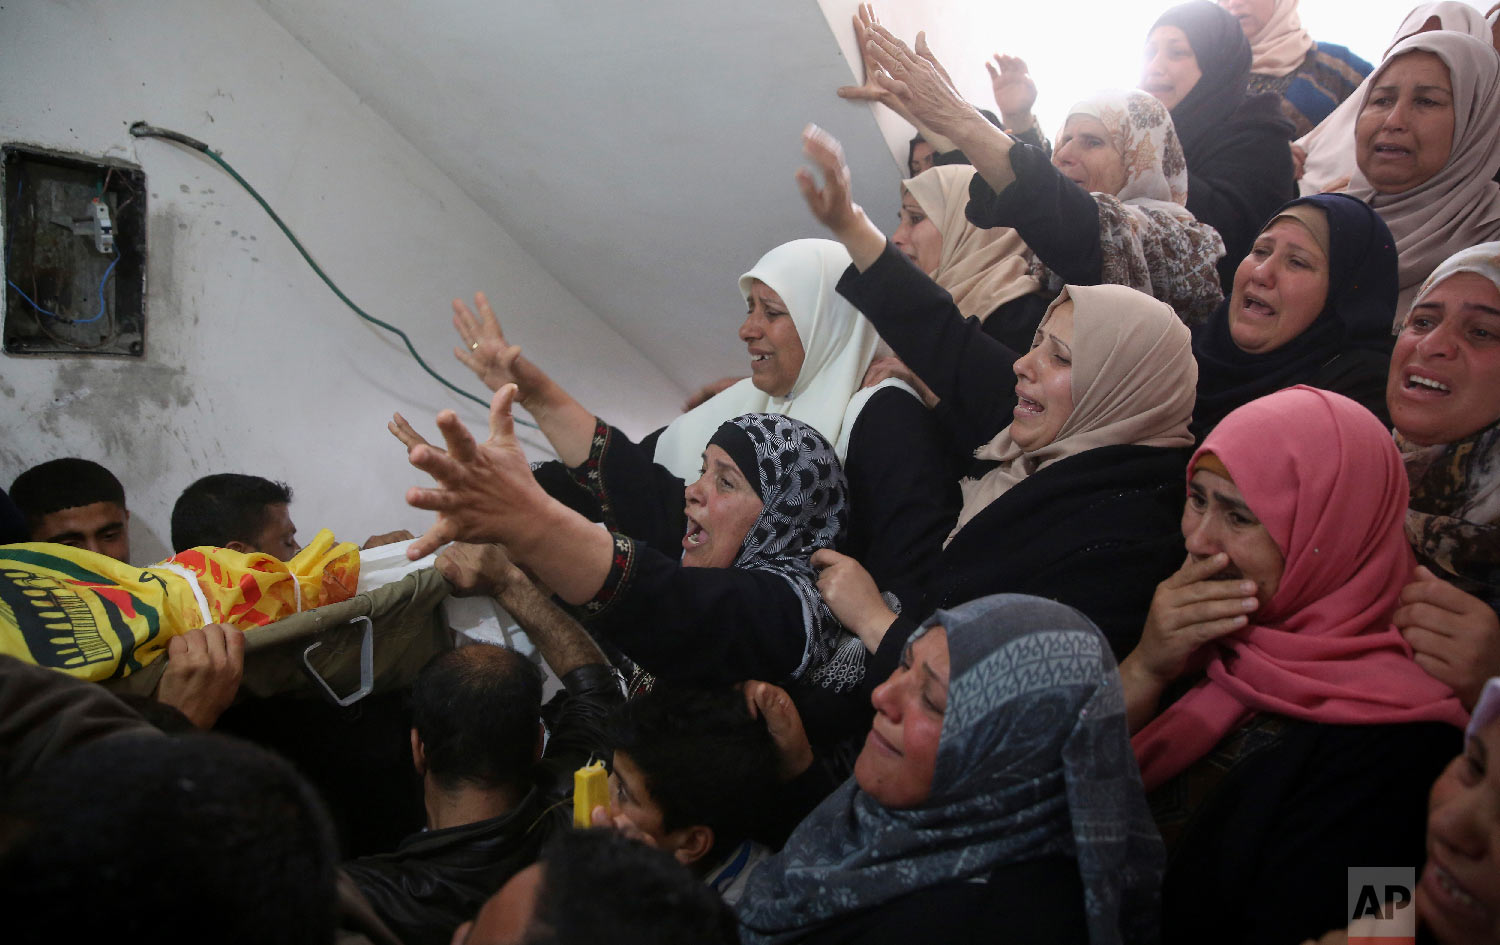 """Relatives mourn over the body of Hamdan Abu Amsha, 23, during his funeral at the family house in Beit Hanoun, Gaza Strip, Saturday, March 31, 2018. Israel will target """"terror organizations"""" in Gaza if violence along the territory's border with Israel drags on, the chief military spokesman warned Saturday, a day after thousands of Palestinians staged protests near the border fence. (AP Photo/Adel Hana)"""